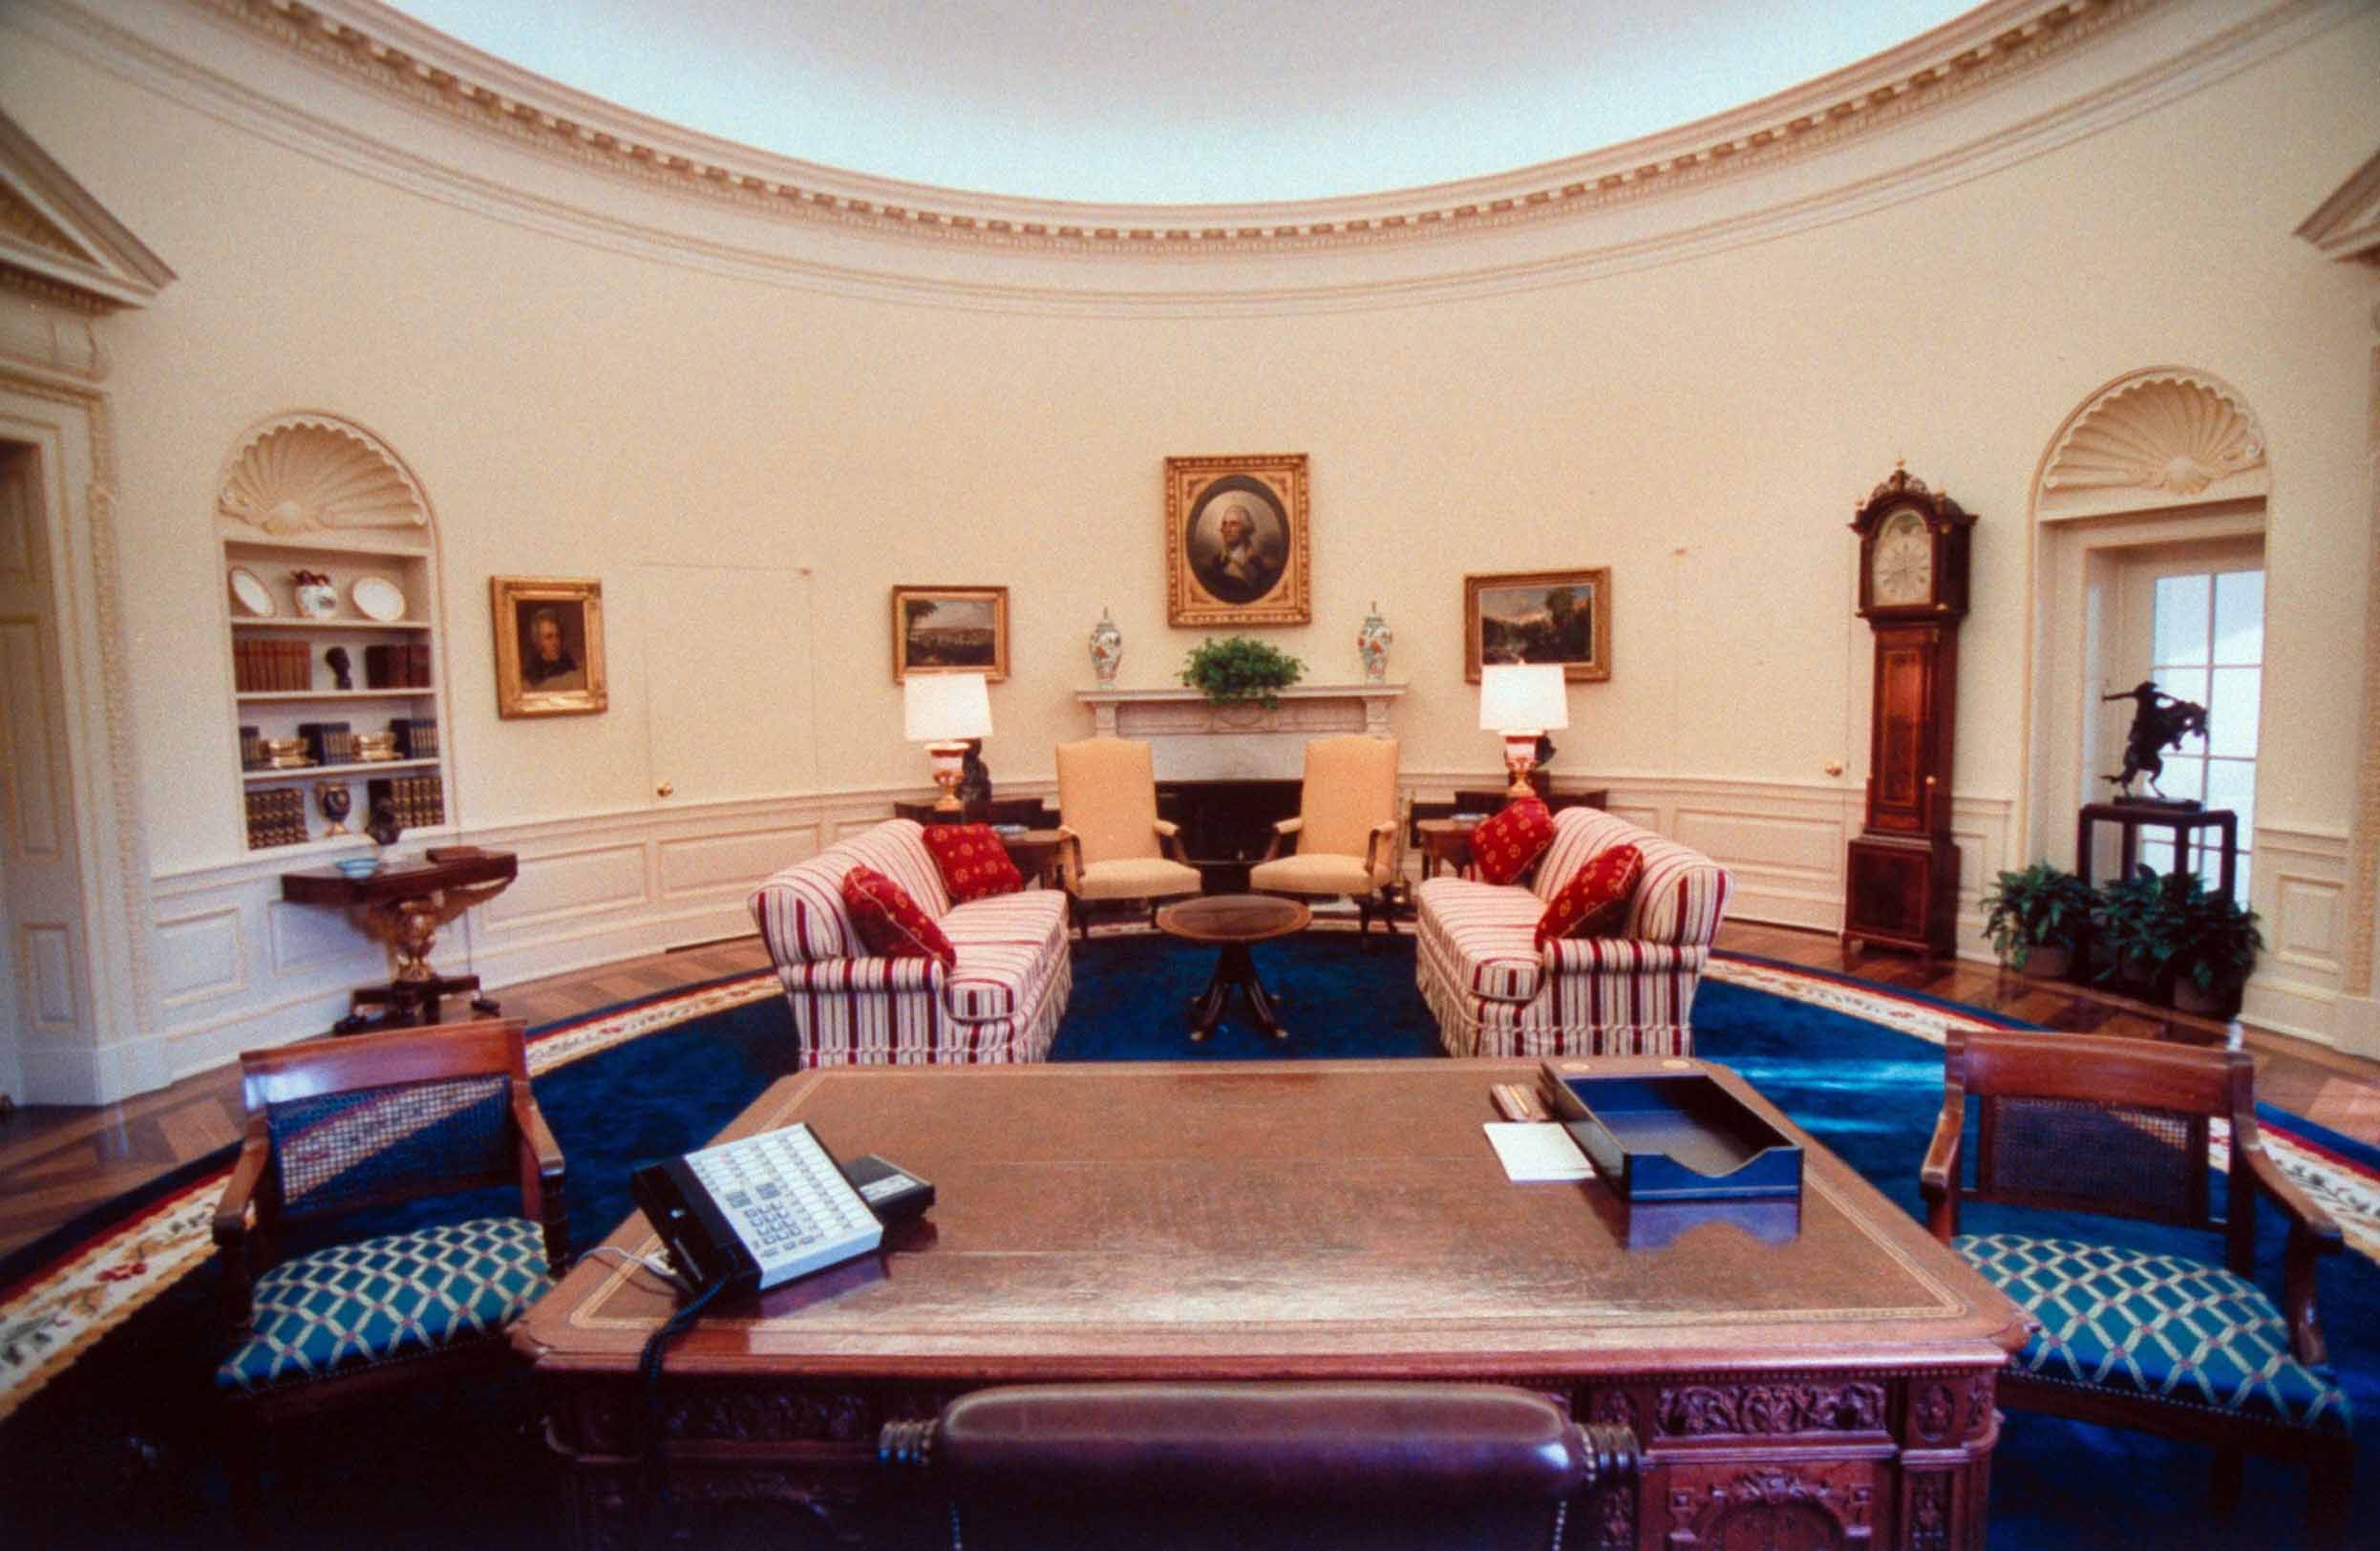 Oval Office Decor Changes In The Last 50 Years Pictures Of The Oval From Every Presidency